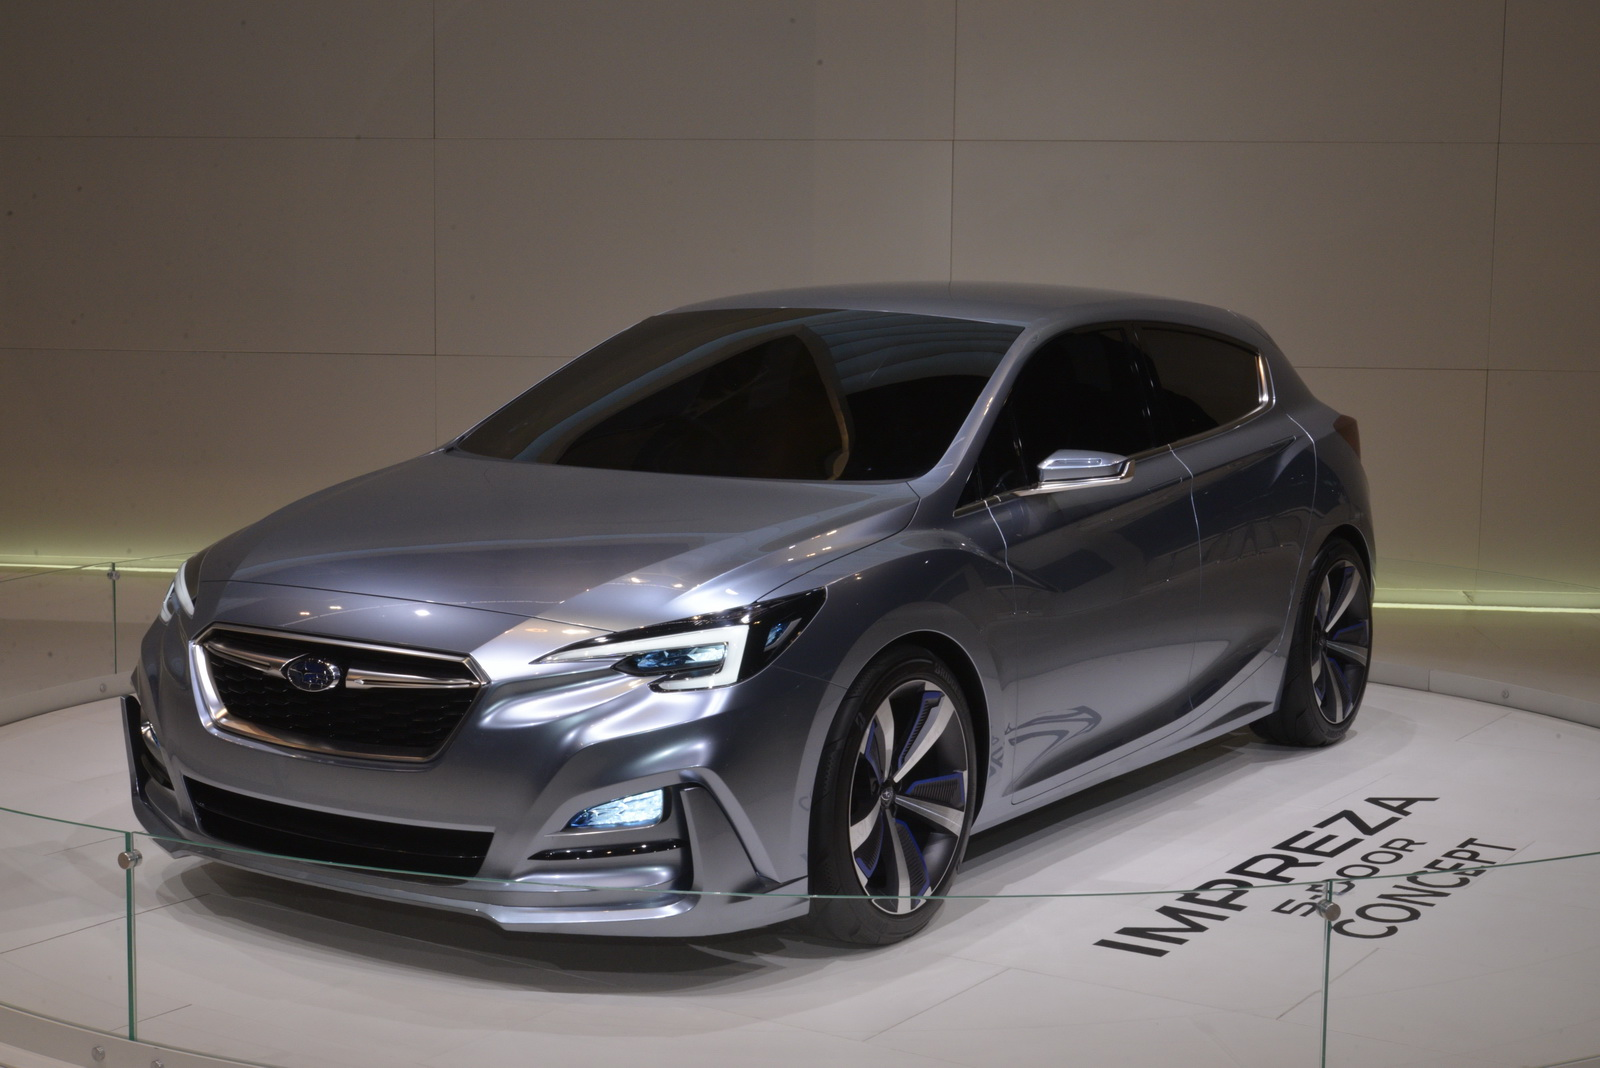 2019 Subaru Impreza 5 door photo - 6